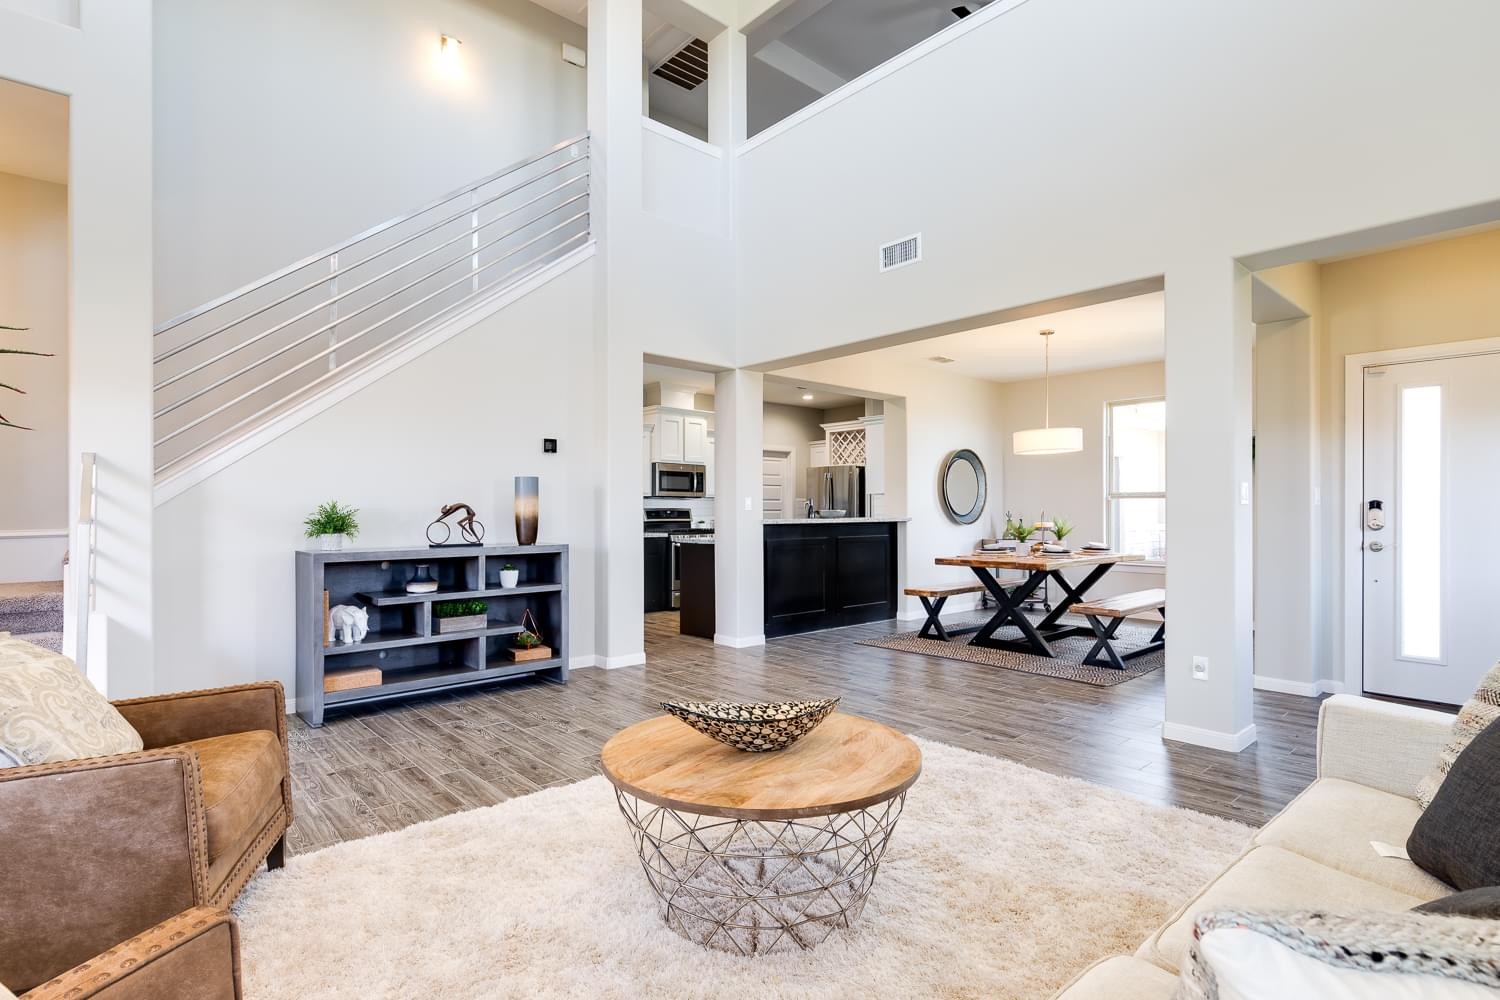 The Rosario new home in Mission TX